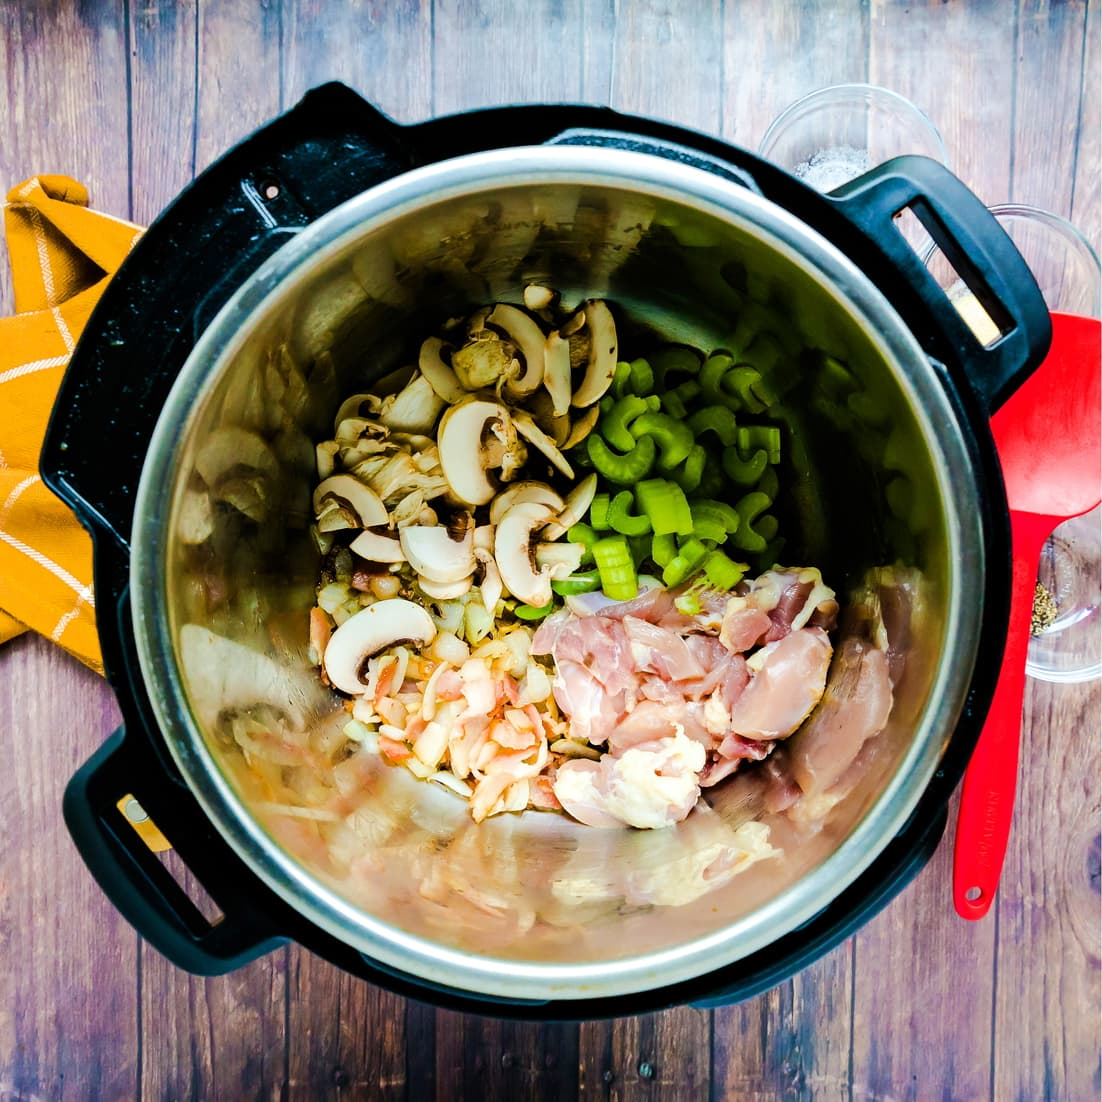 Ingredients for Keto Creamy Chicken Soup inside a instapot